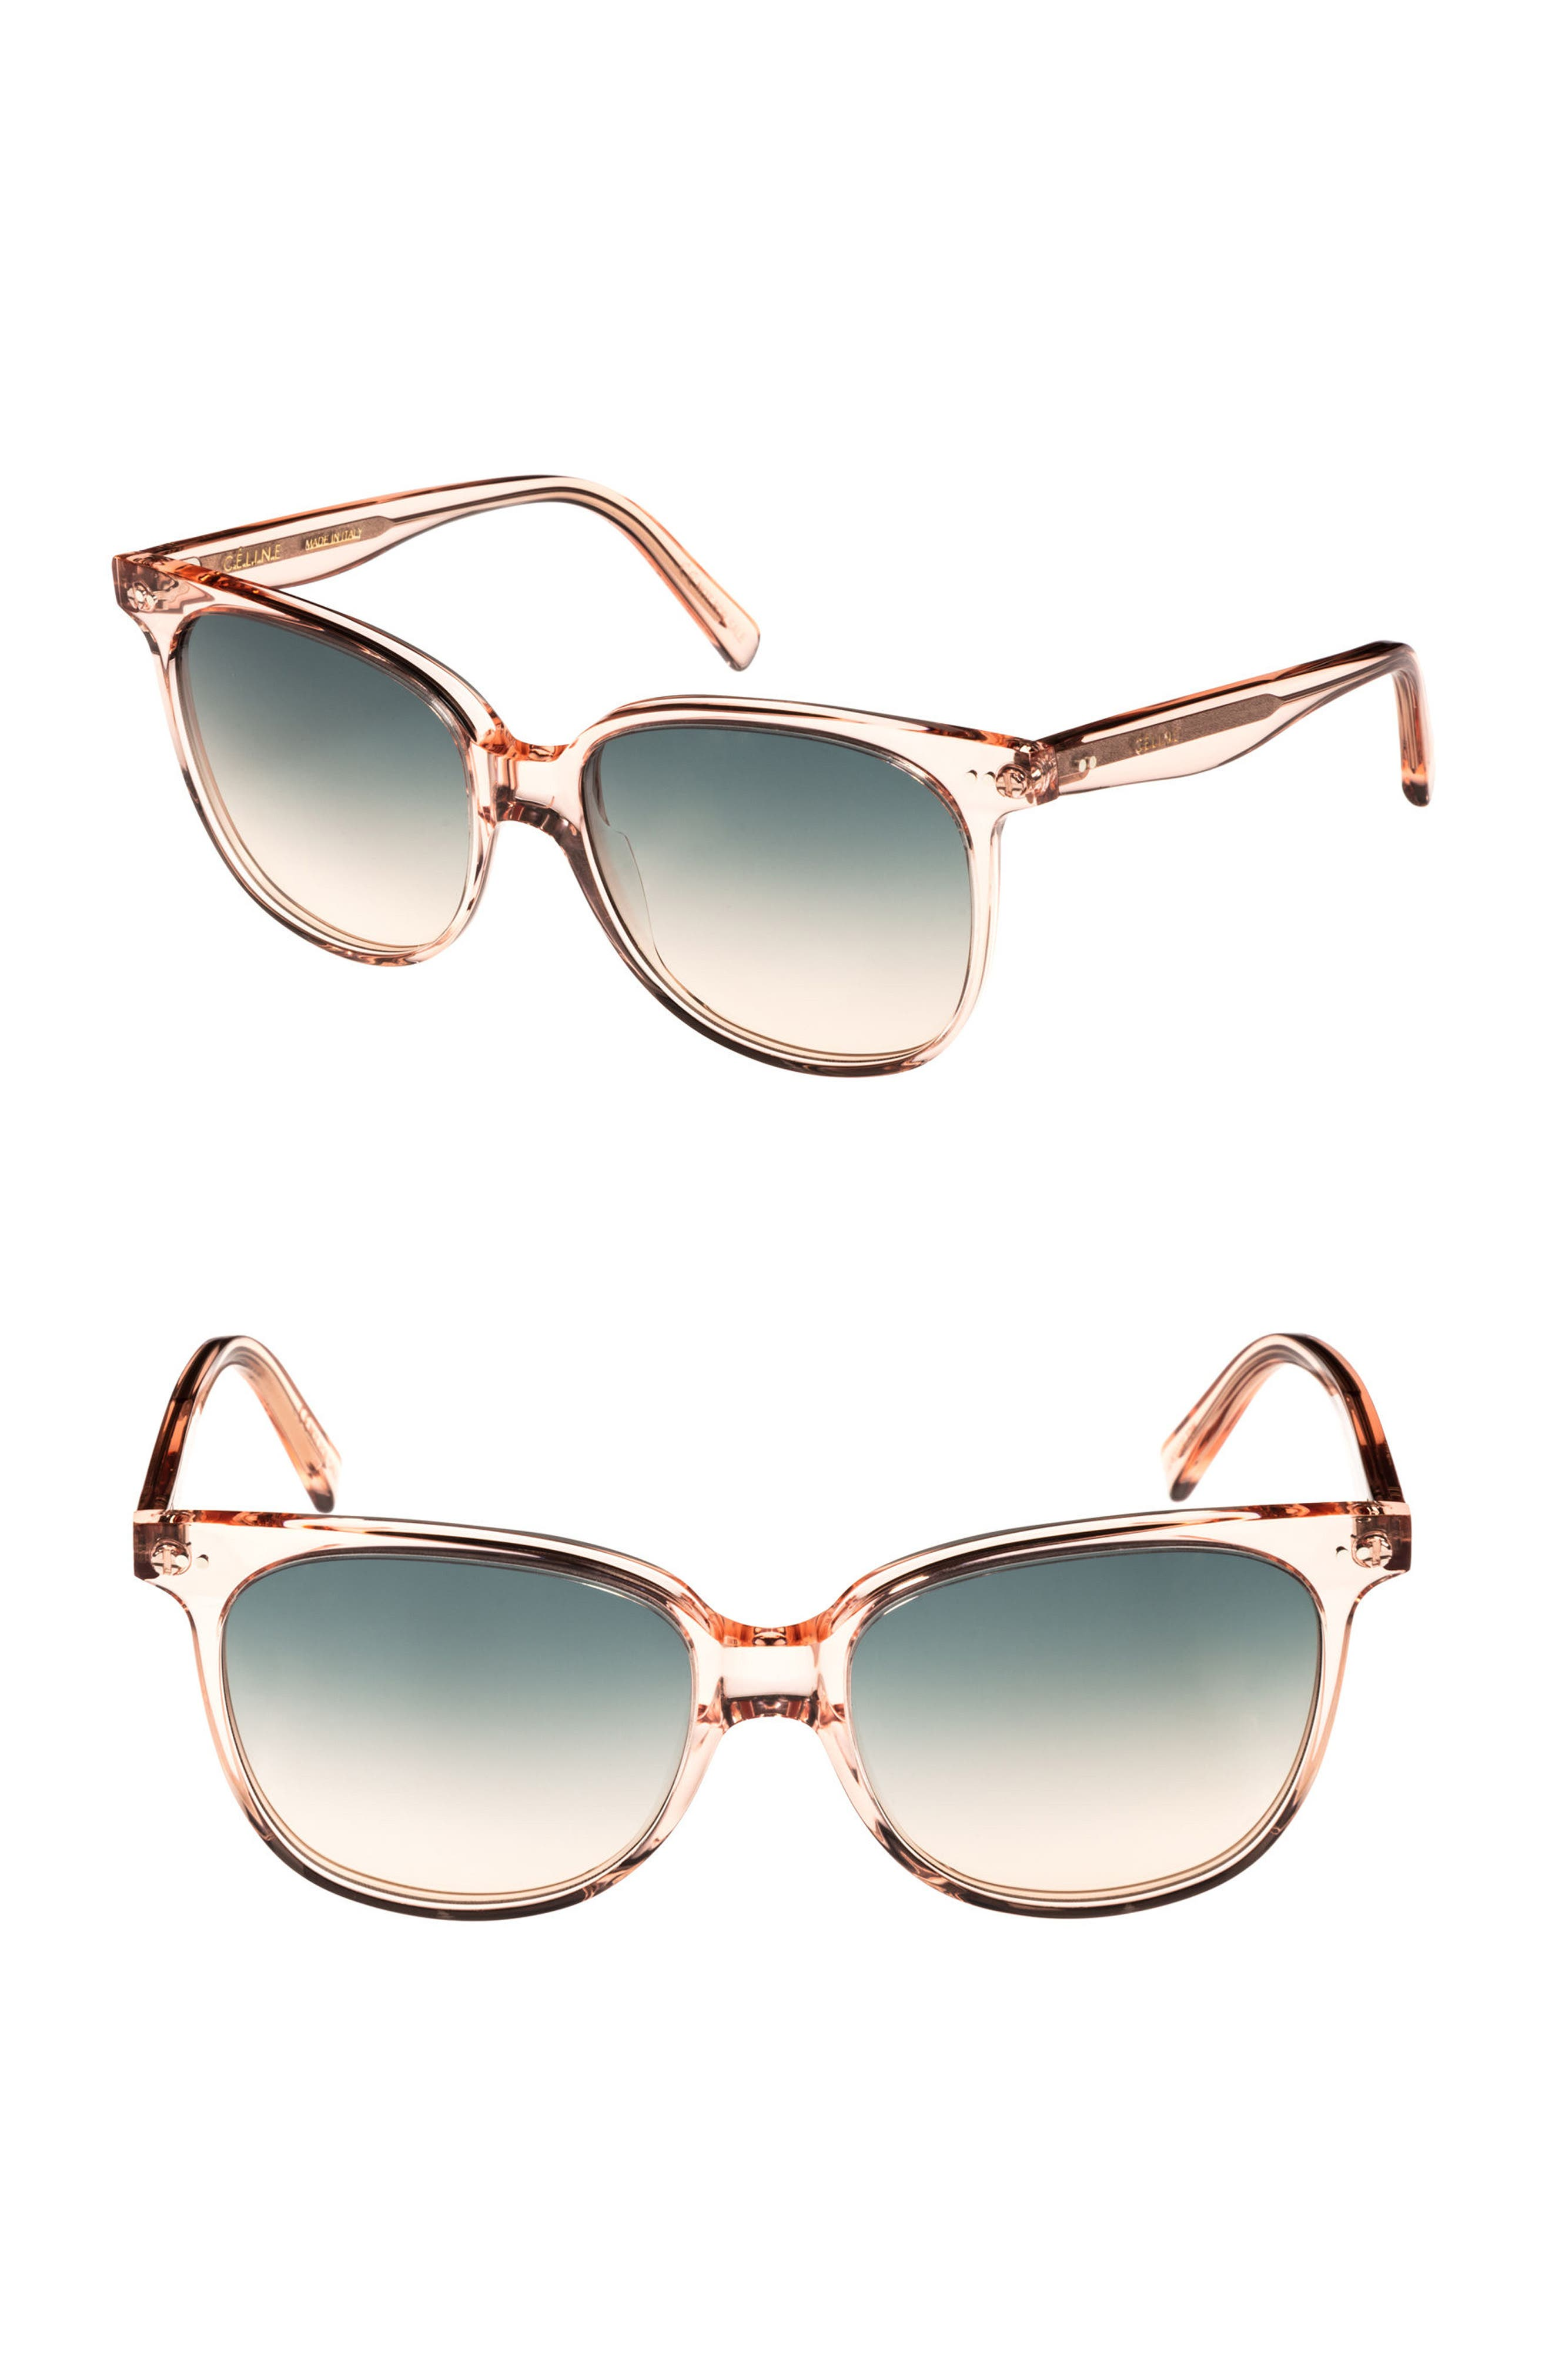 57mm Square Sunglasses,                             Main thumbnail 1, color,                             Baby Pink/ Turquoise